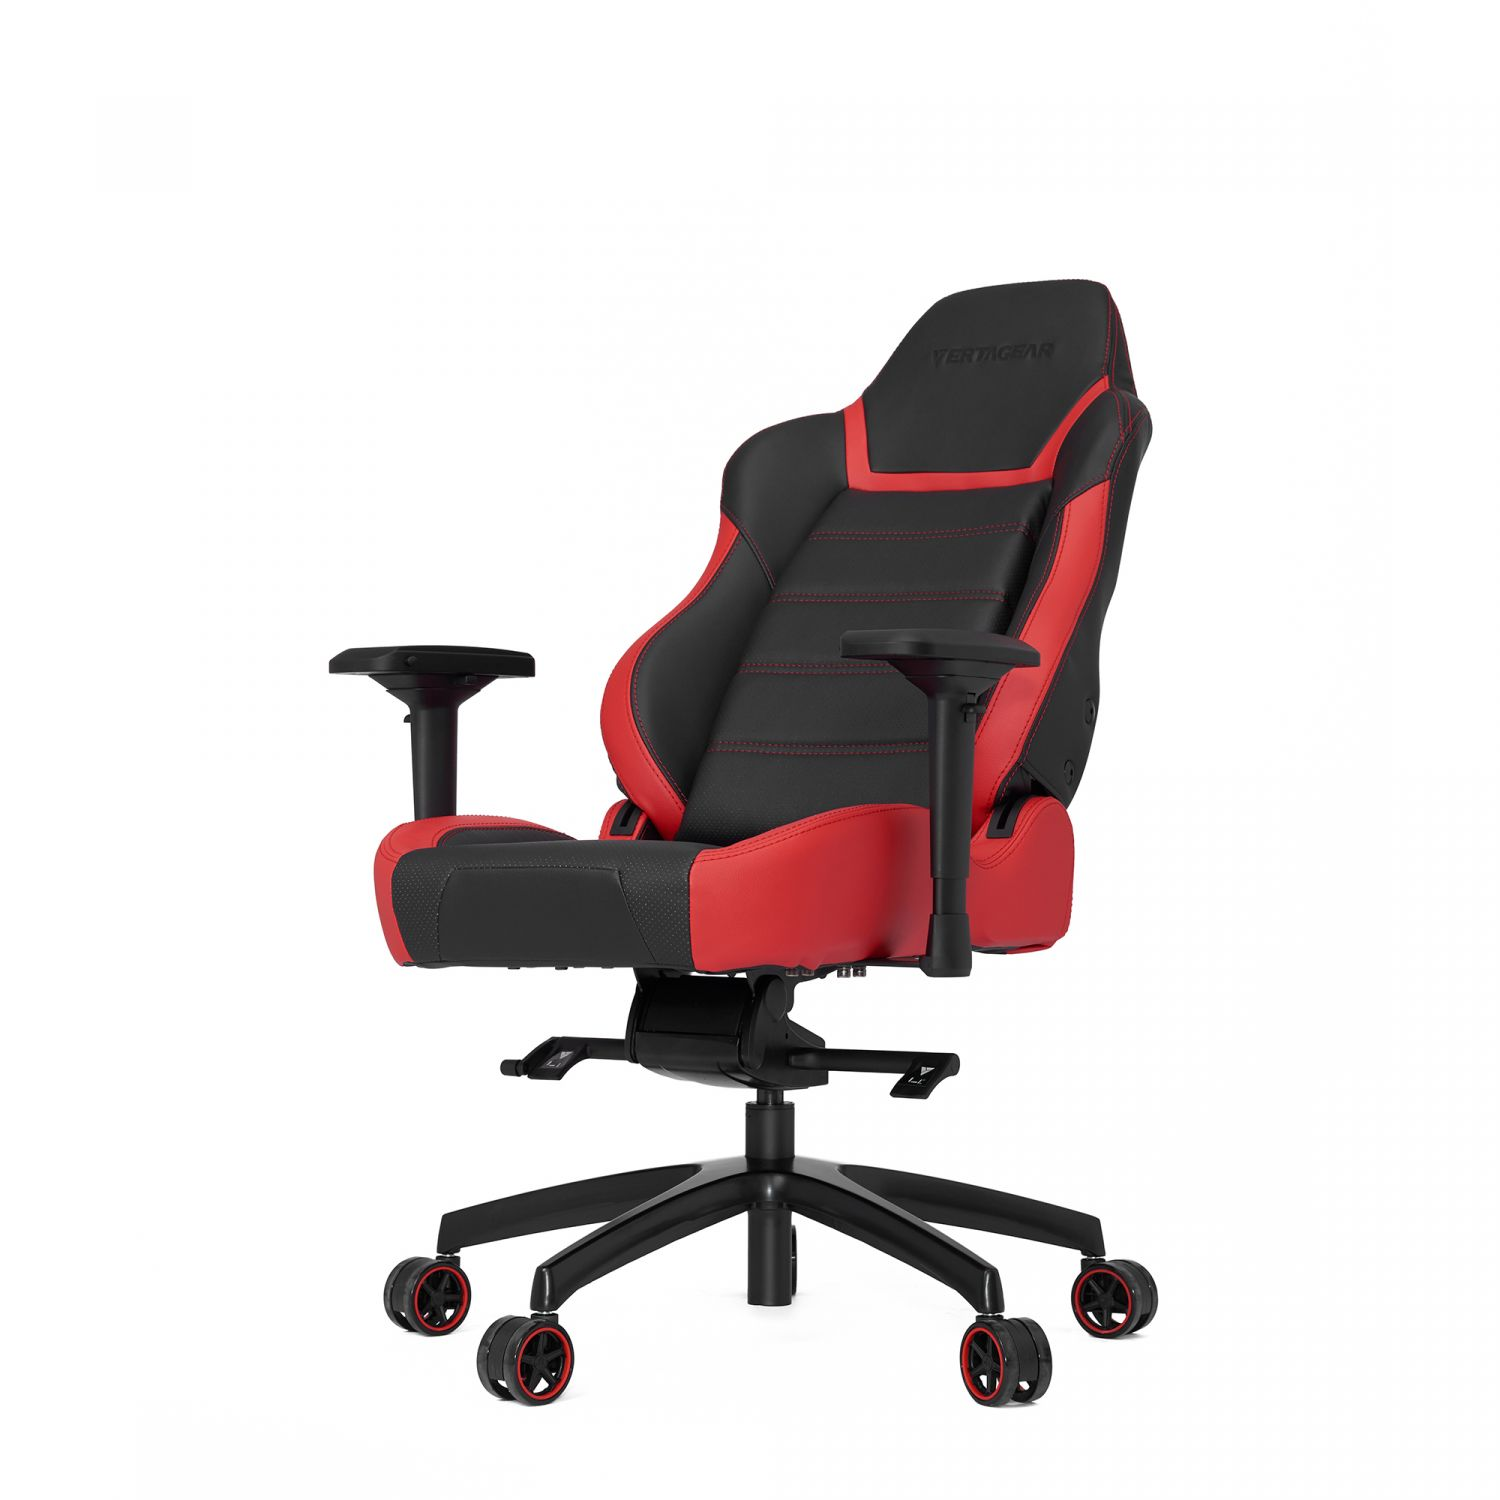 Hyperx Chair Vertagear Pl6000 Gaming Chair Black Red Edition Nordic